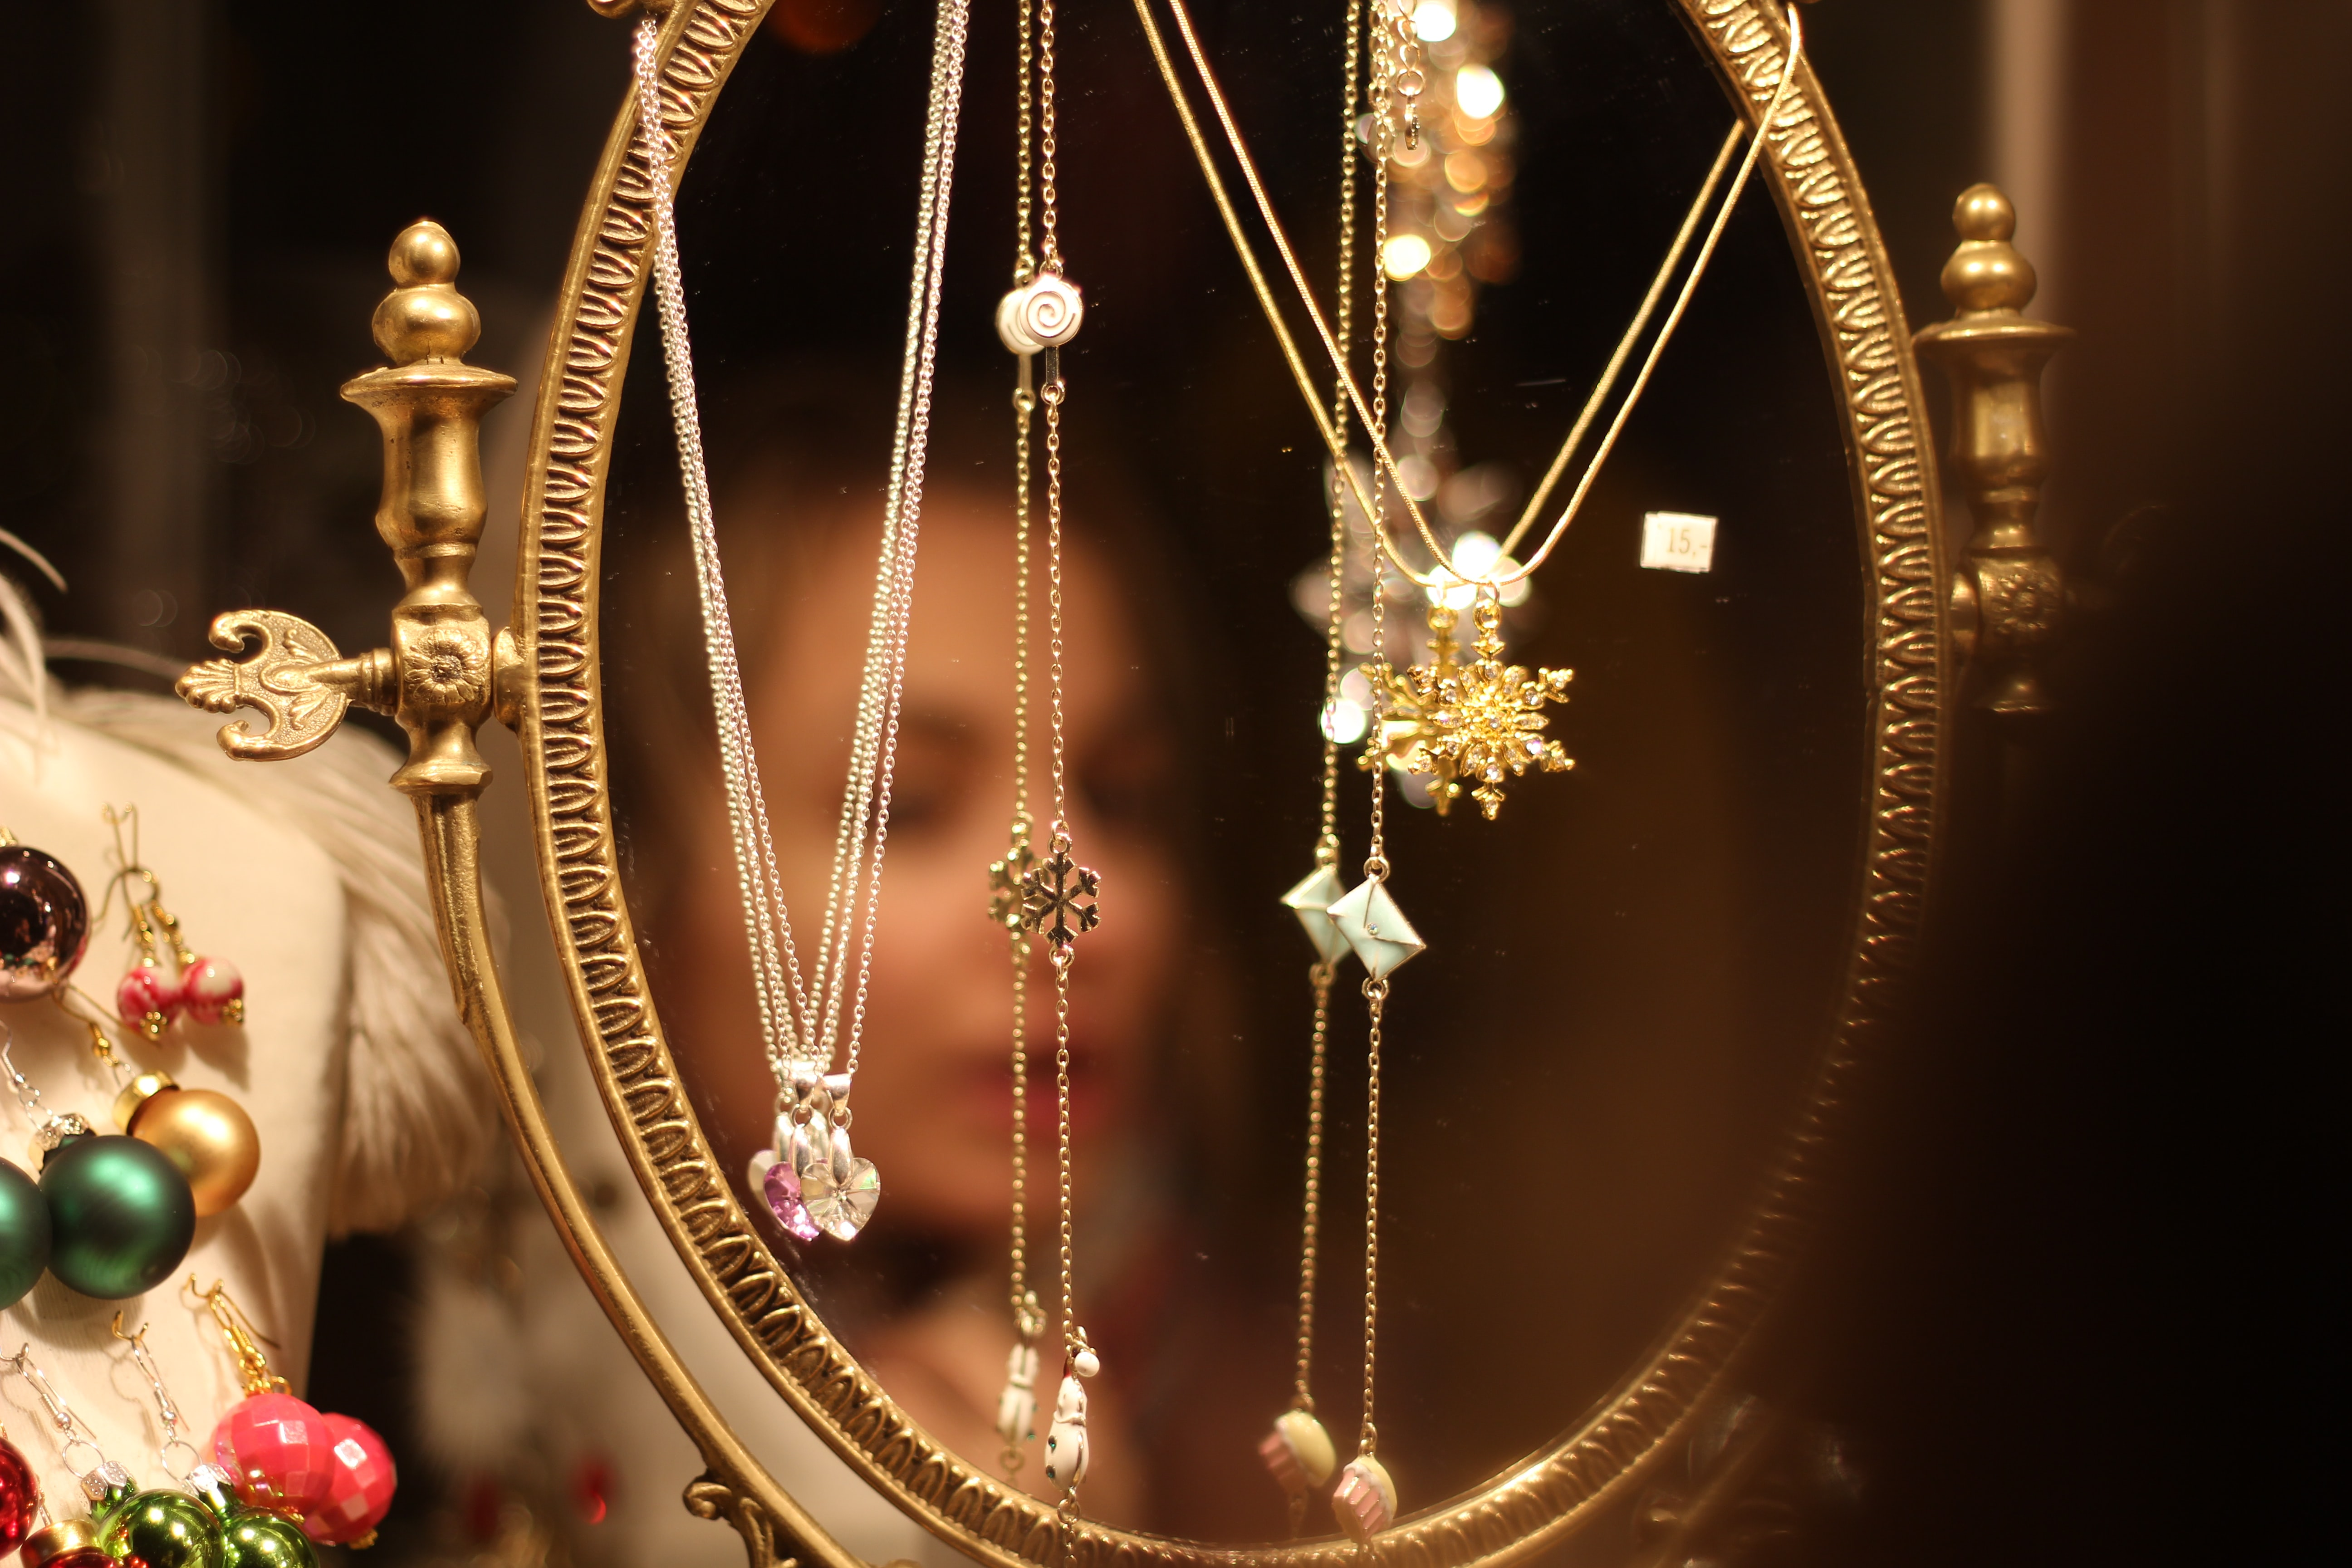 assorted jewelries hanged on mirror